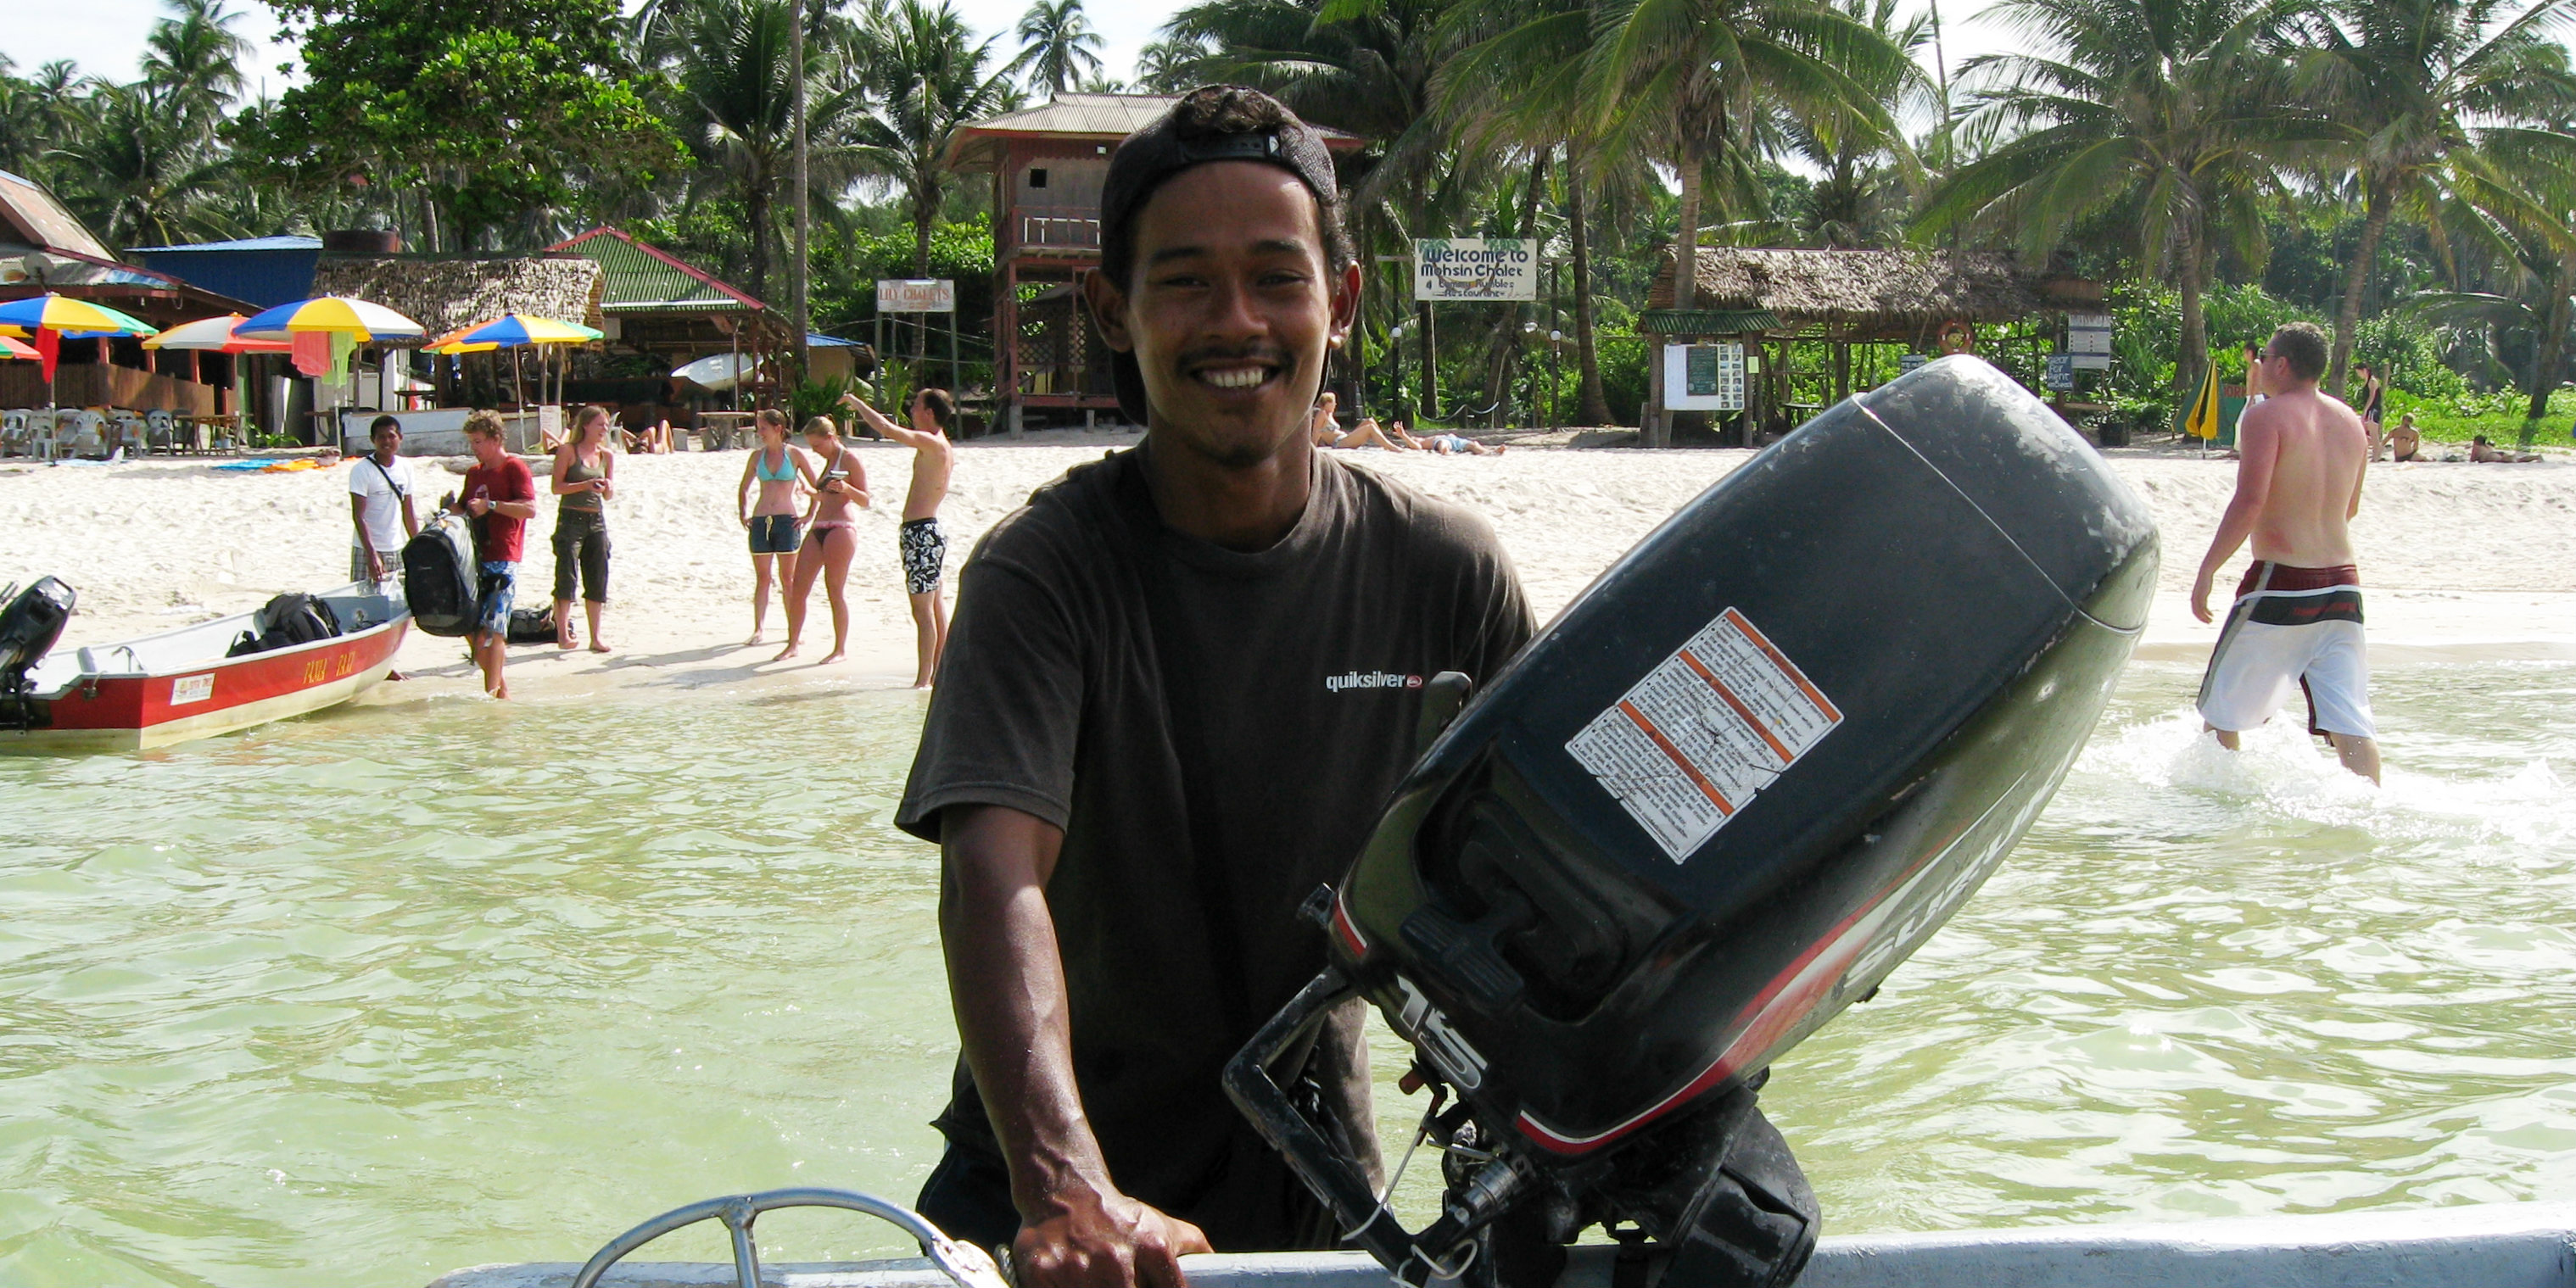 A man helps bring a scuba diving boat back in after one of its scuba diving adventrues.